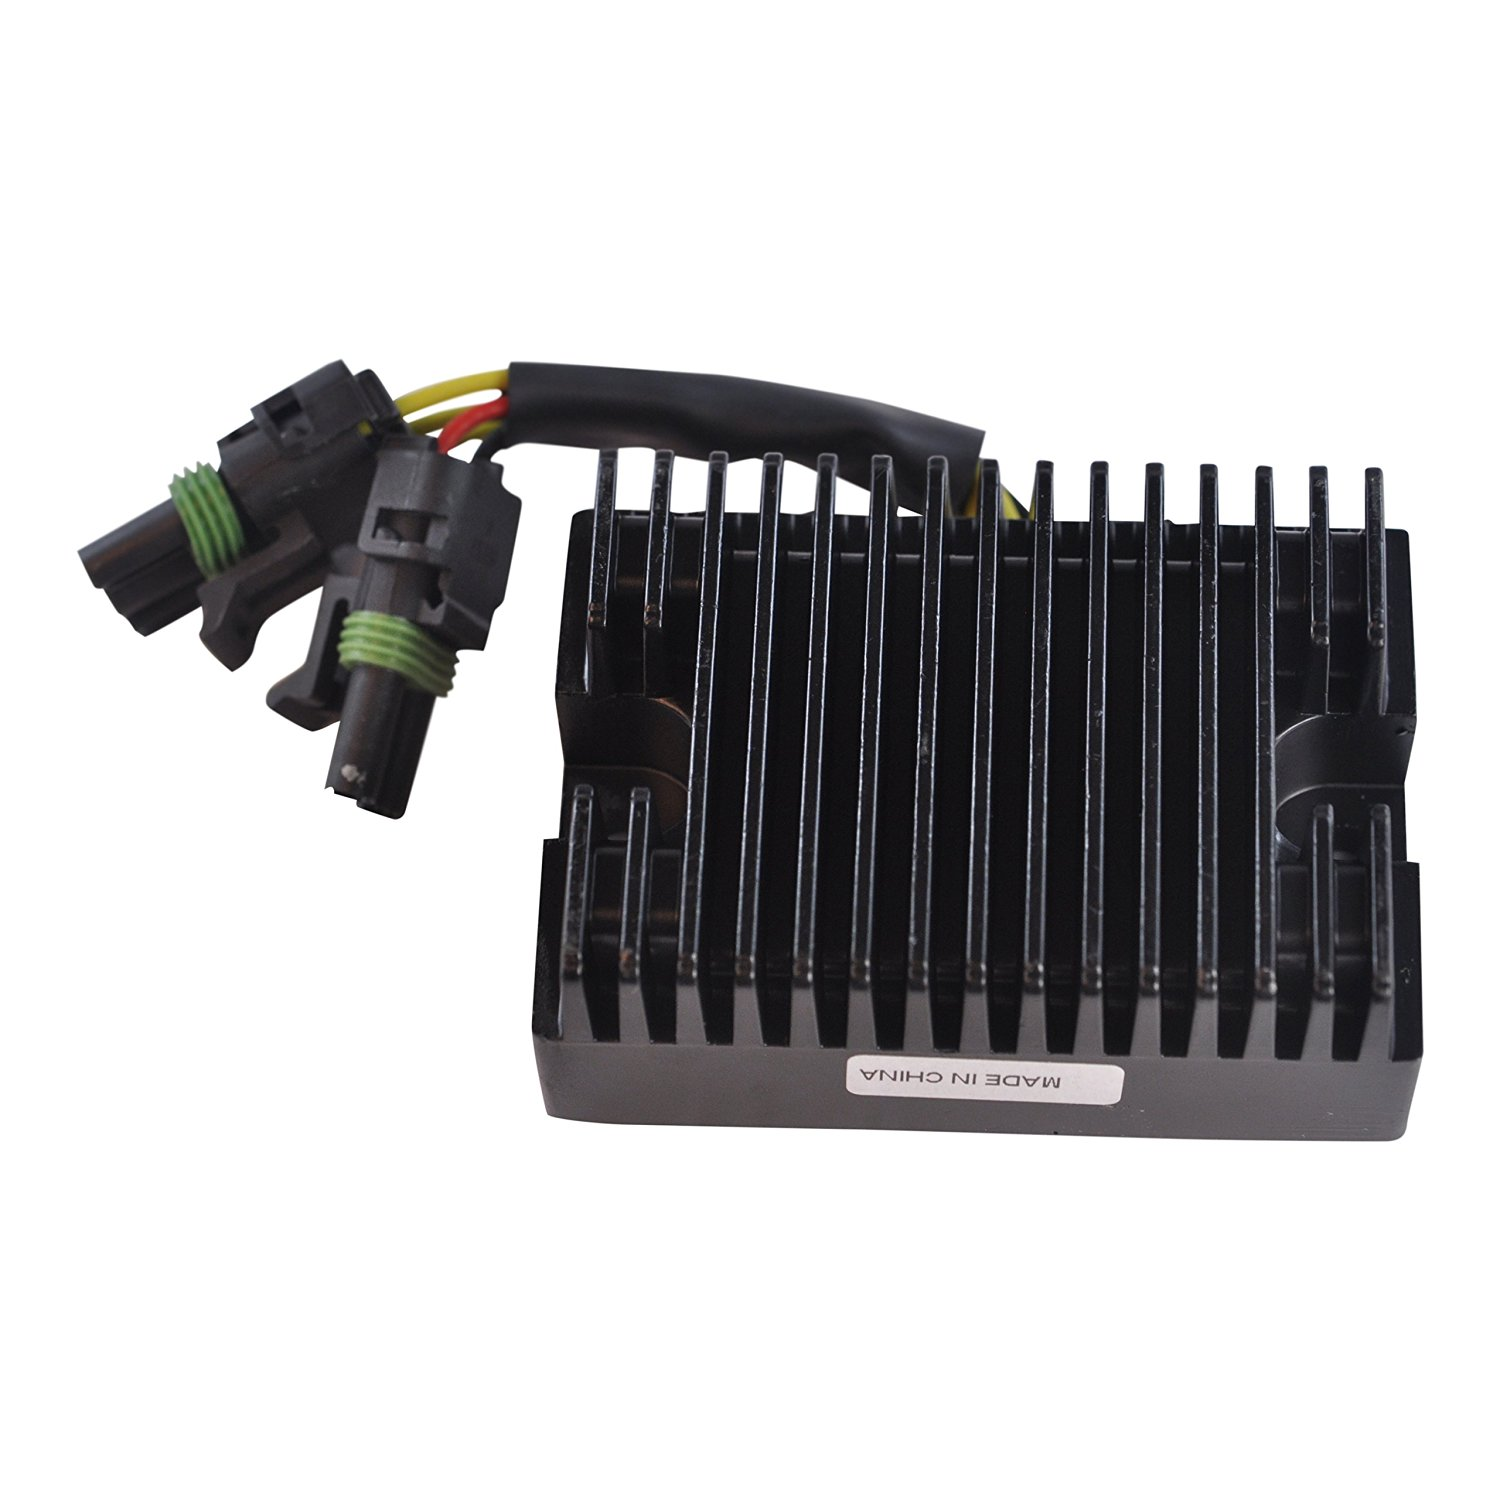 Voltage Regulator Rectifier For Sea Doo 780 GTX 800 GTI 951 GTX / LRV / RX / XP / Sportster 1998-2006